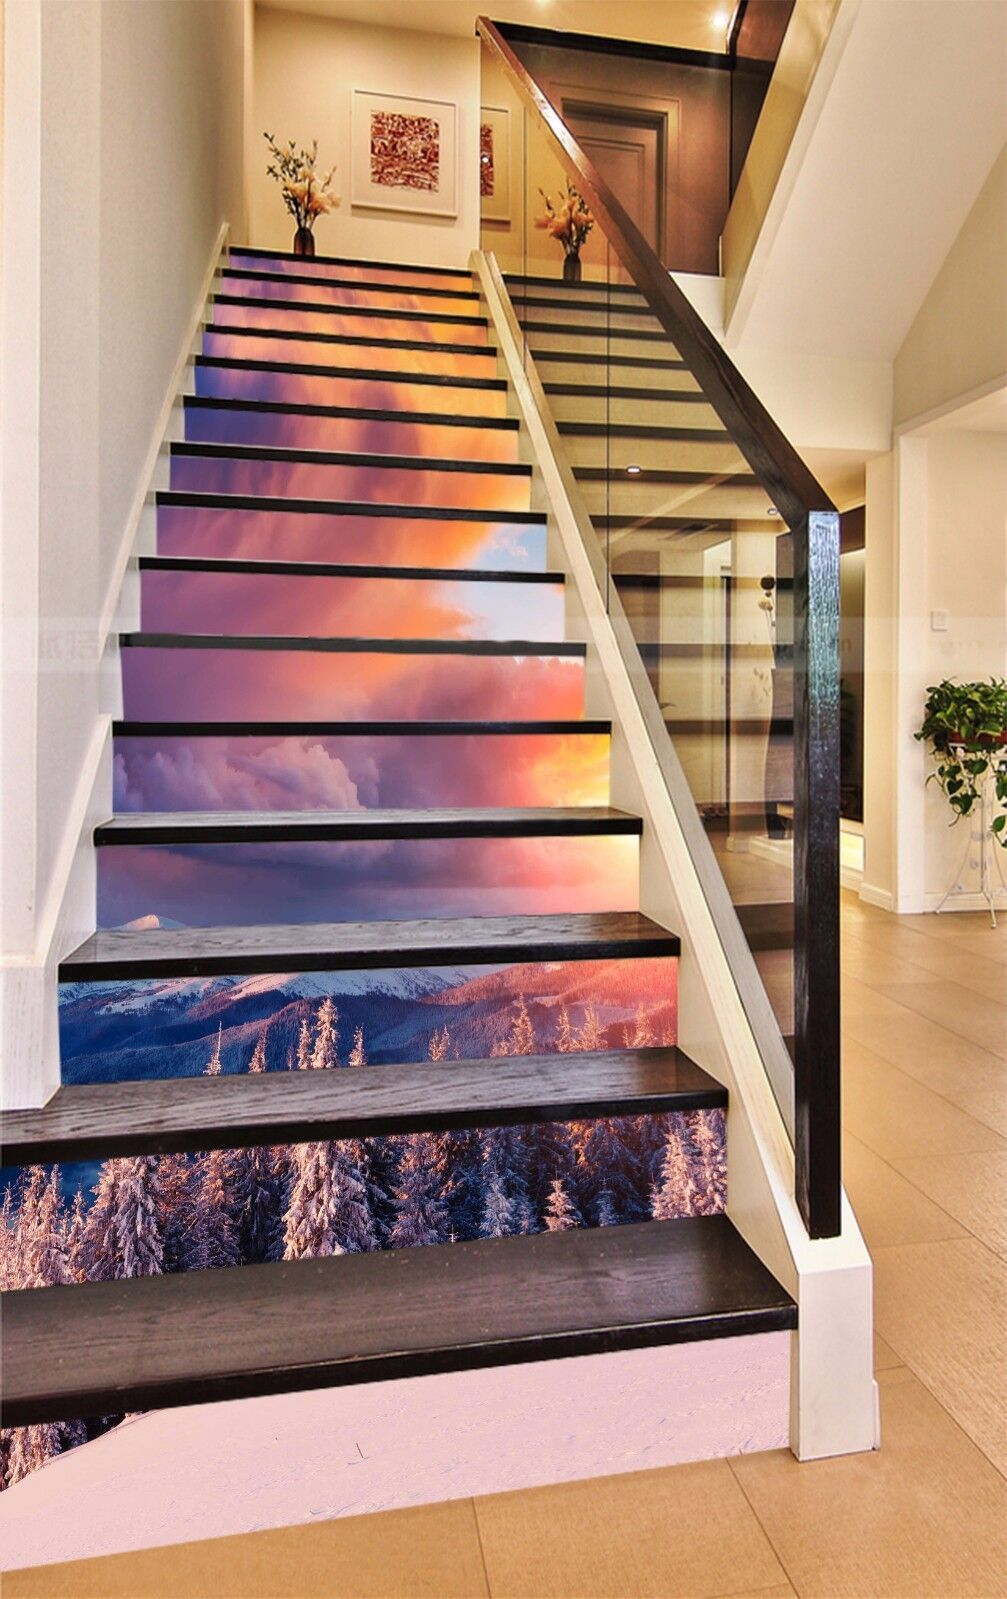 3d snow view 8424 risers decoration mural vinyl decal wallpaper au stair photo nvvcrc5797 decals stickers vinyl art